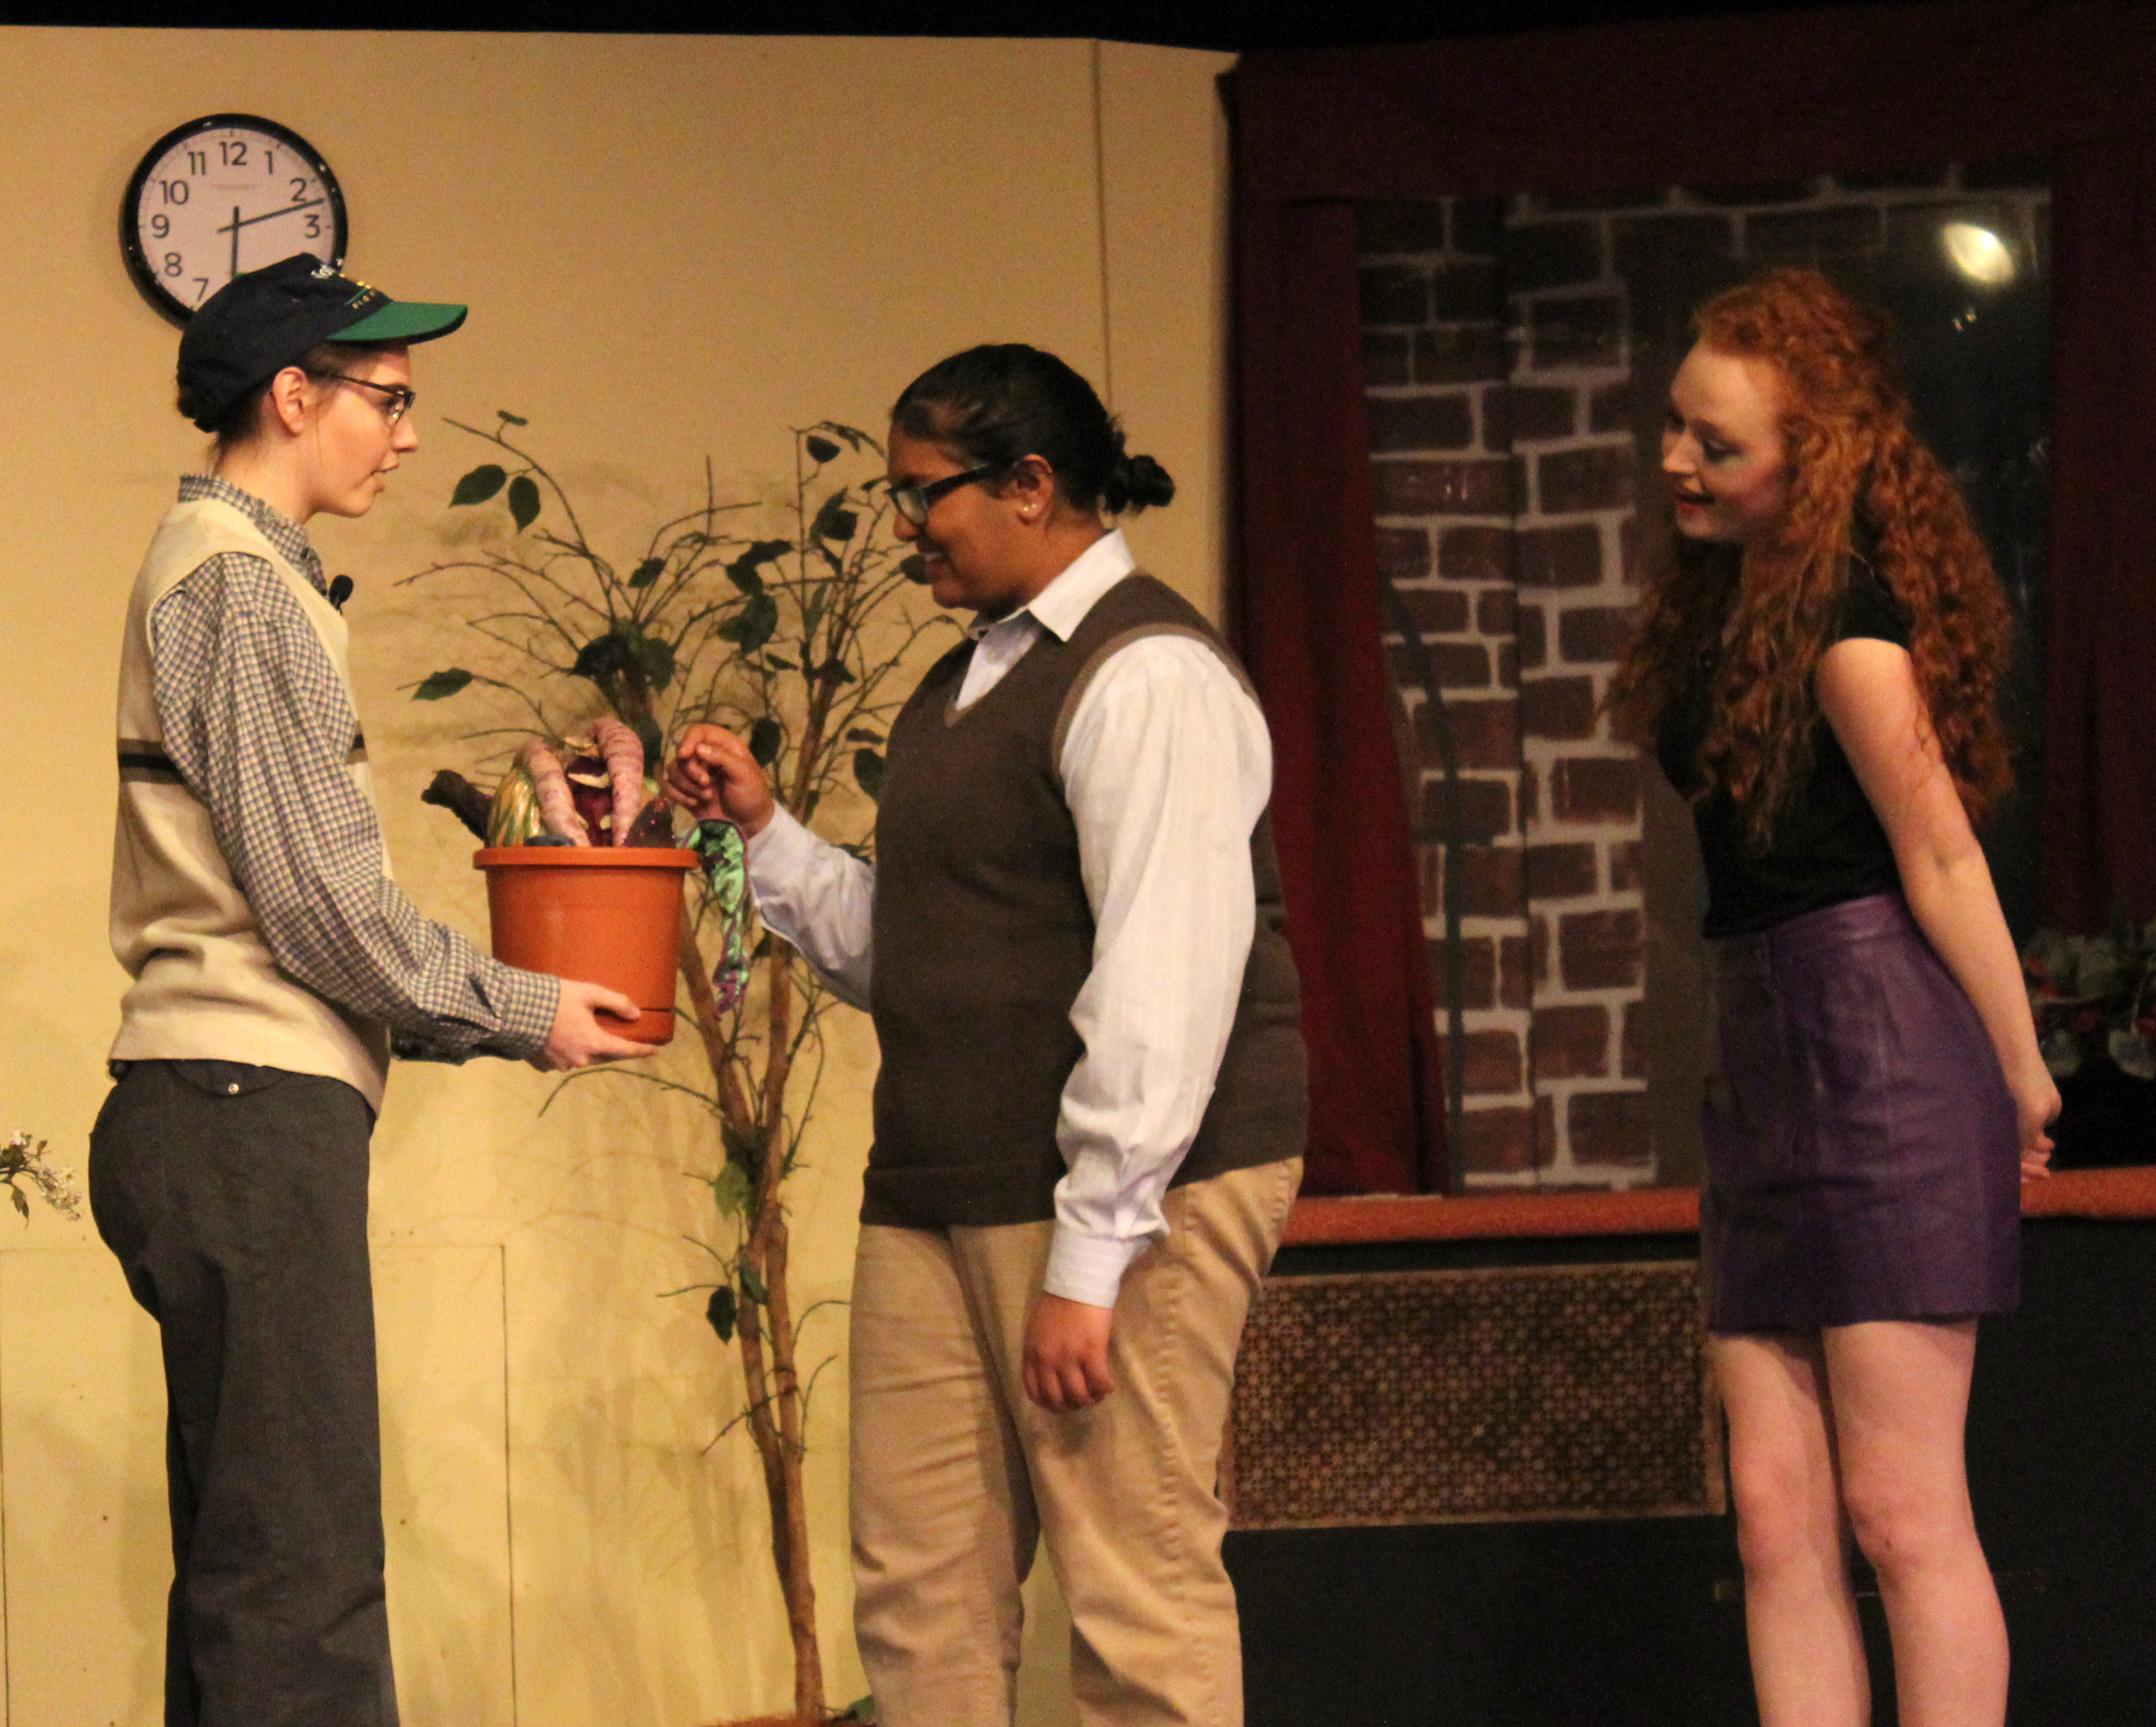 Feed Me, Seymour: Lincoln School's Fantastic Little Shop of Horrors